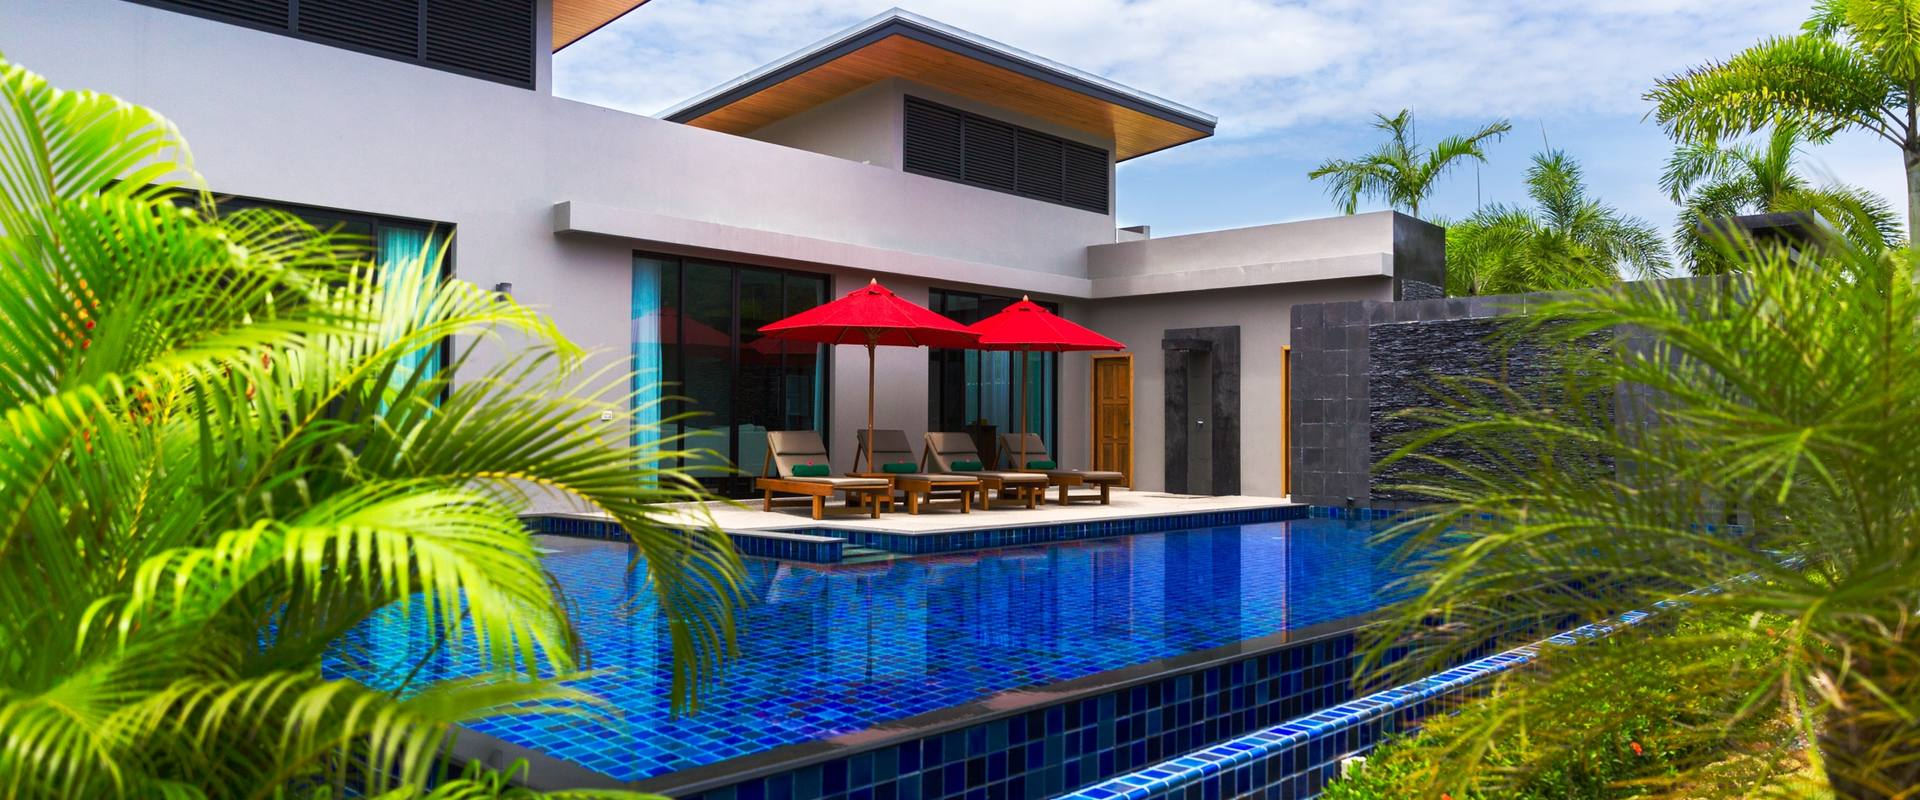 Vacation Rental Villa Aroha